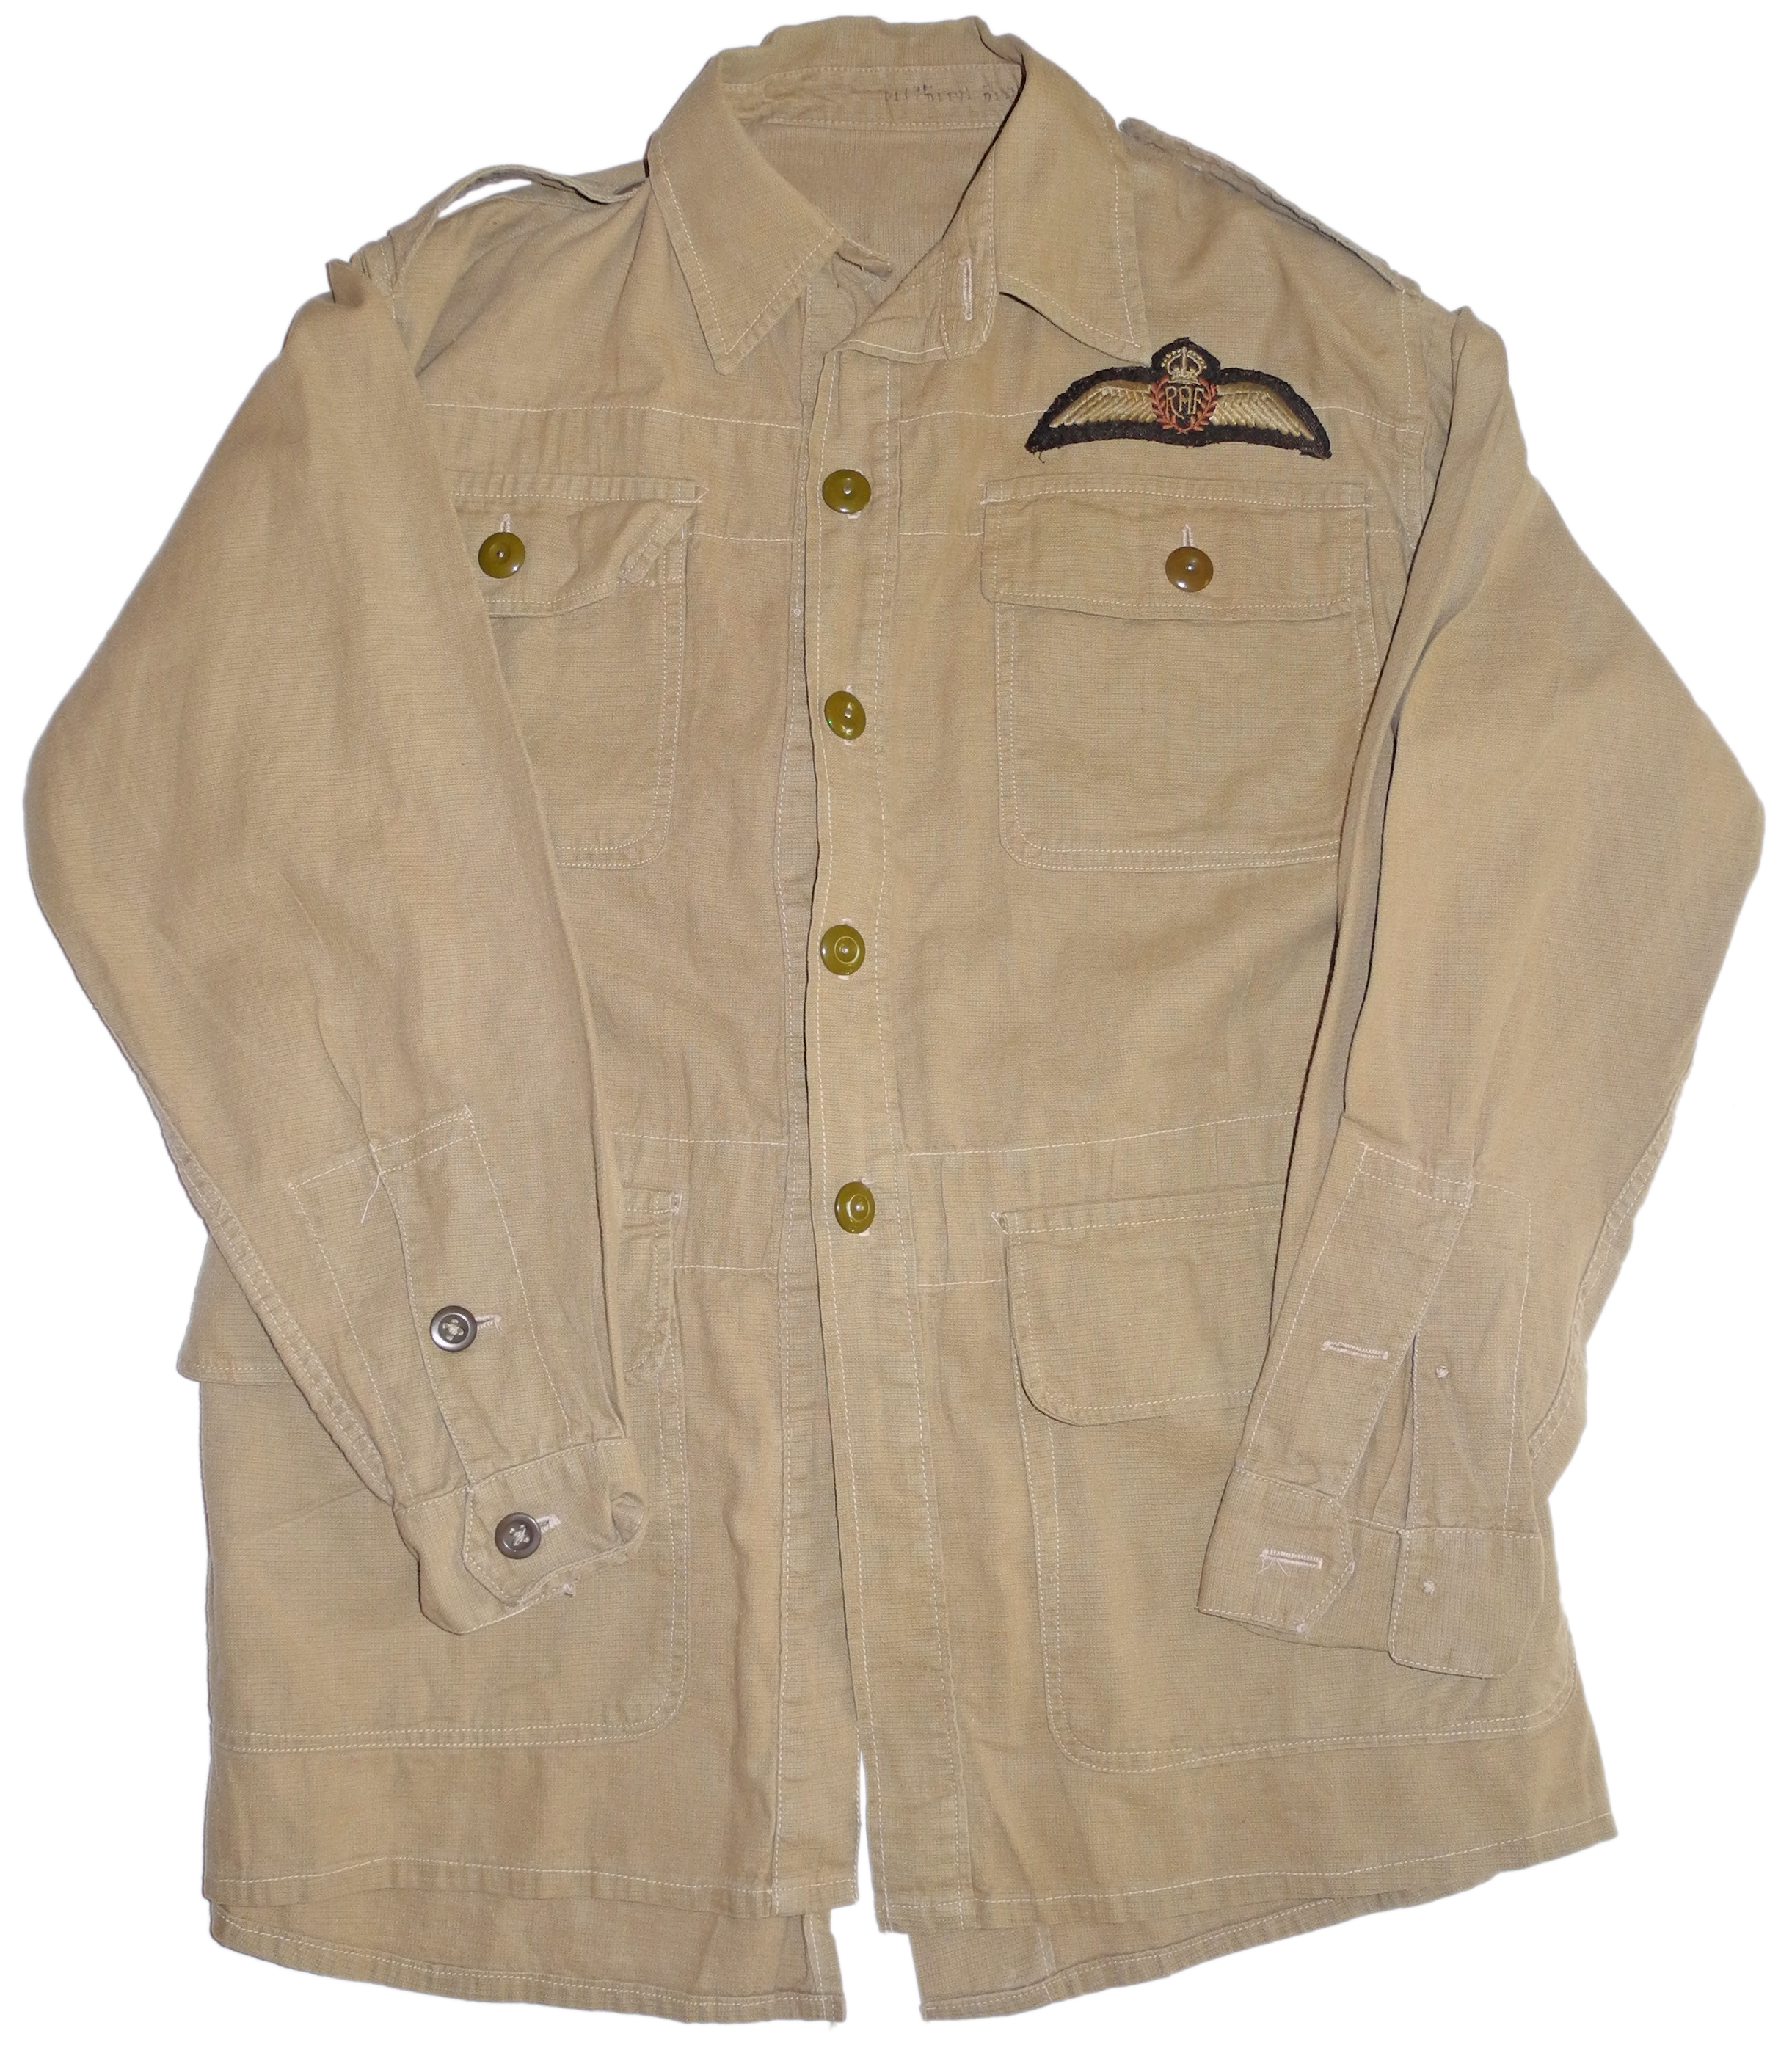 RAF Bush Shirt with pilot wing